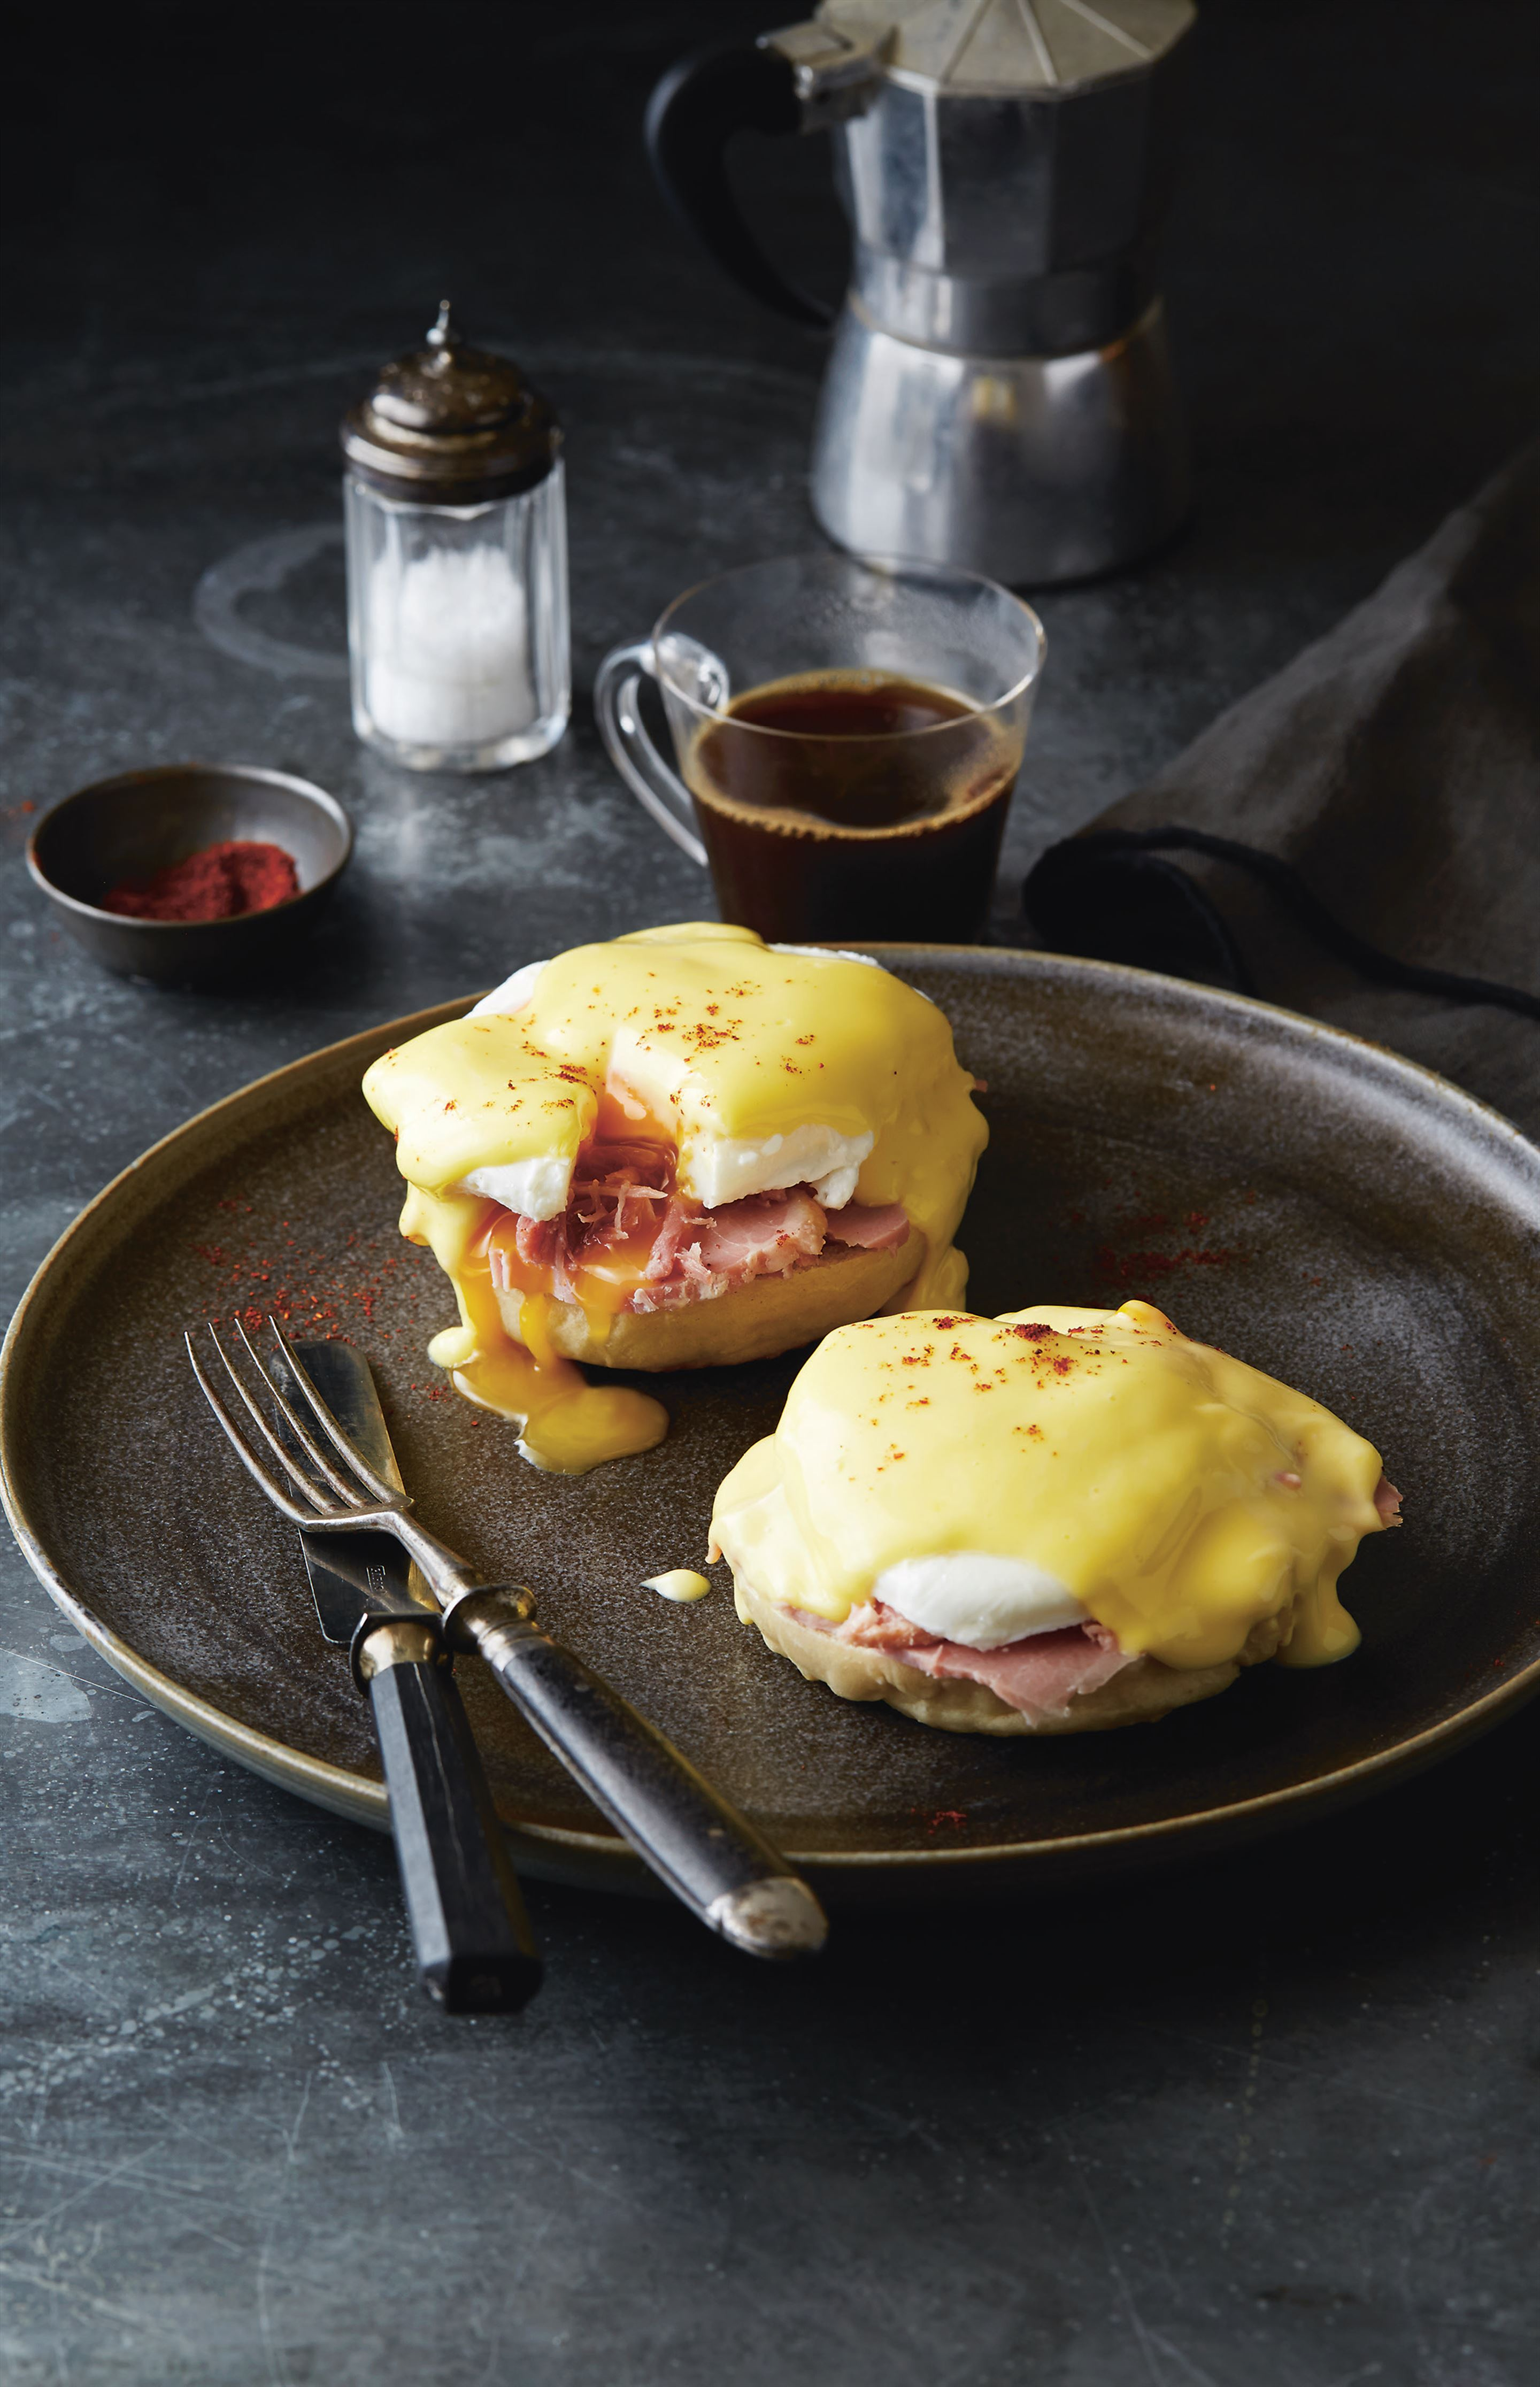 Home-made muffins with eggs benedict